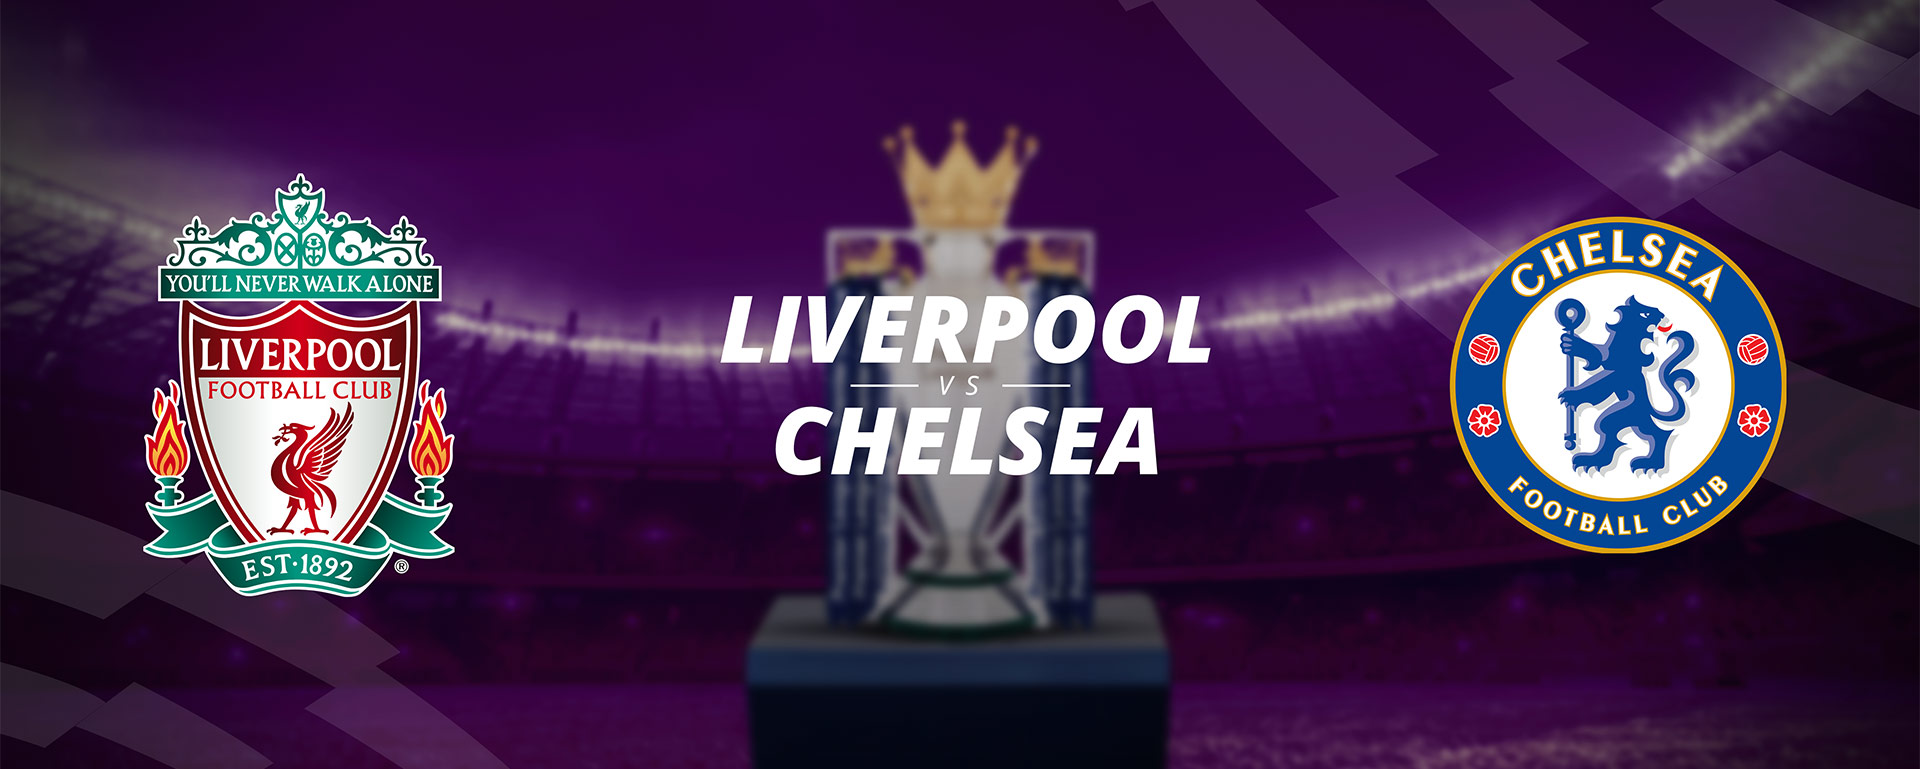 LIVERPOOL VS CHELSEA: BETTING PREVIEW